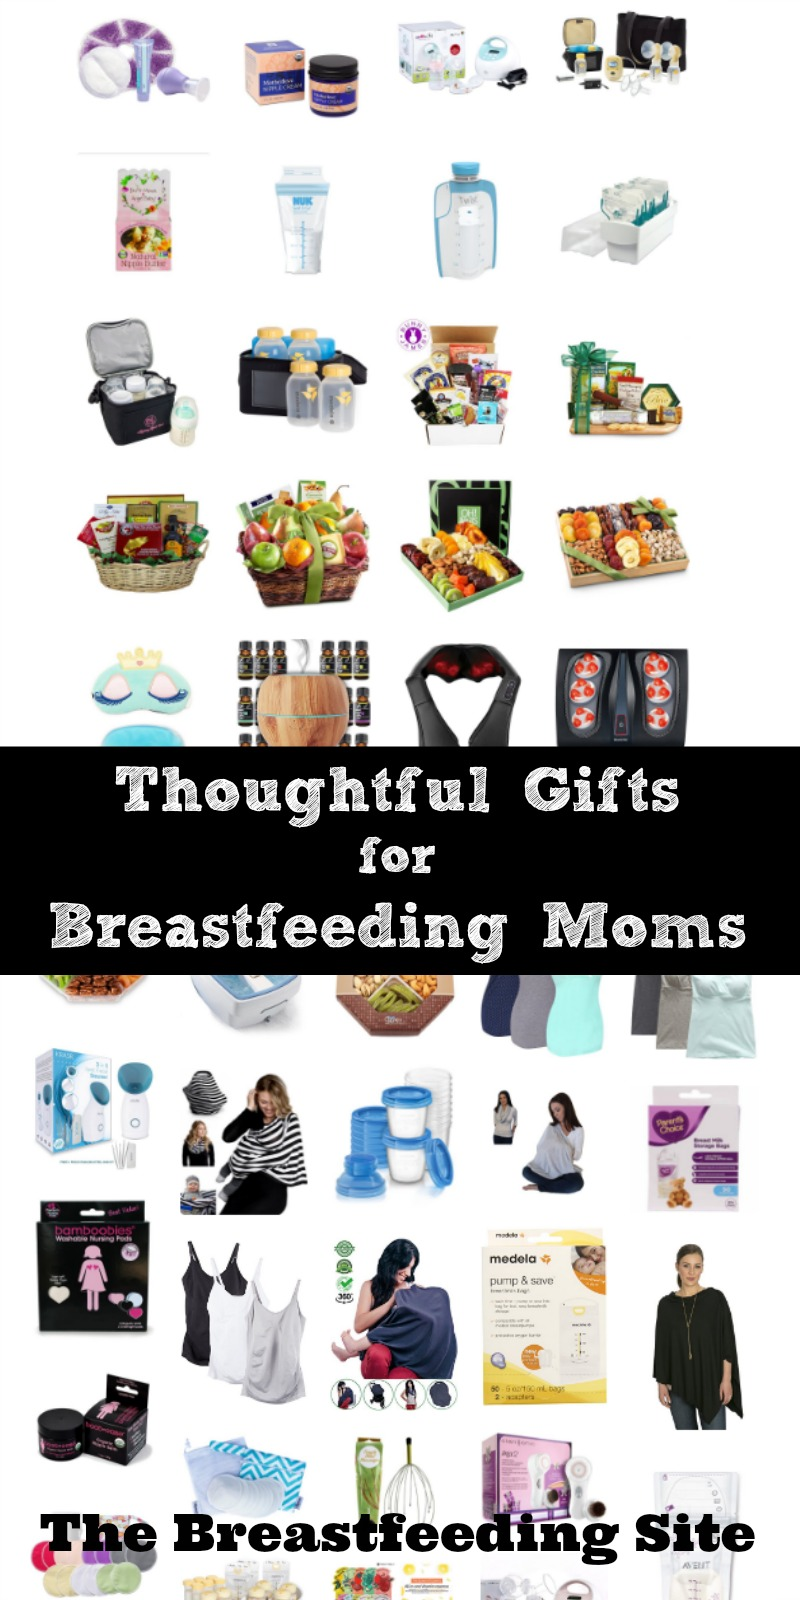 Thoughtful Gifts for Breastfeeding Moms